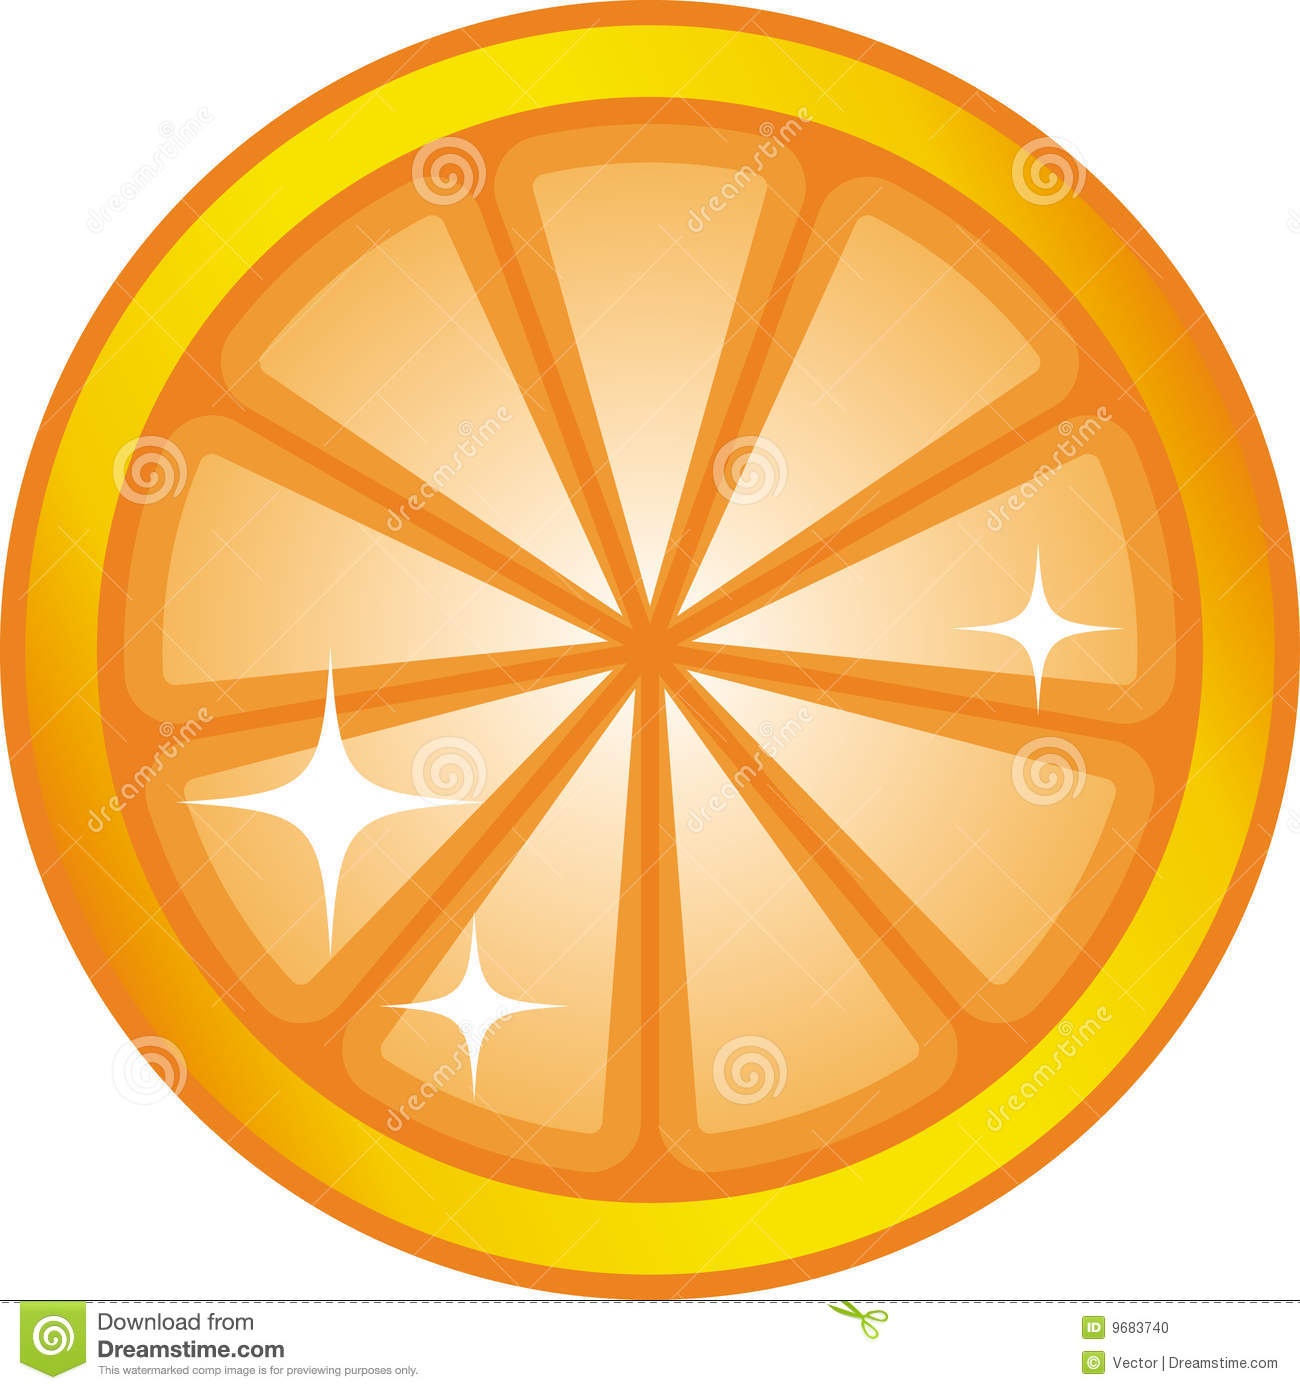 Orange Slice (Vector) Stock Photo - Image: 9683740